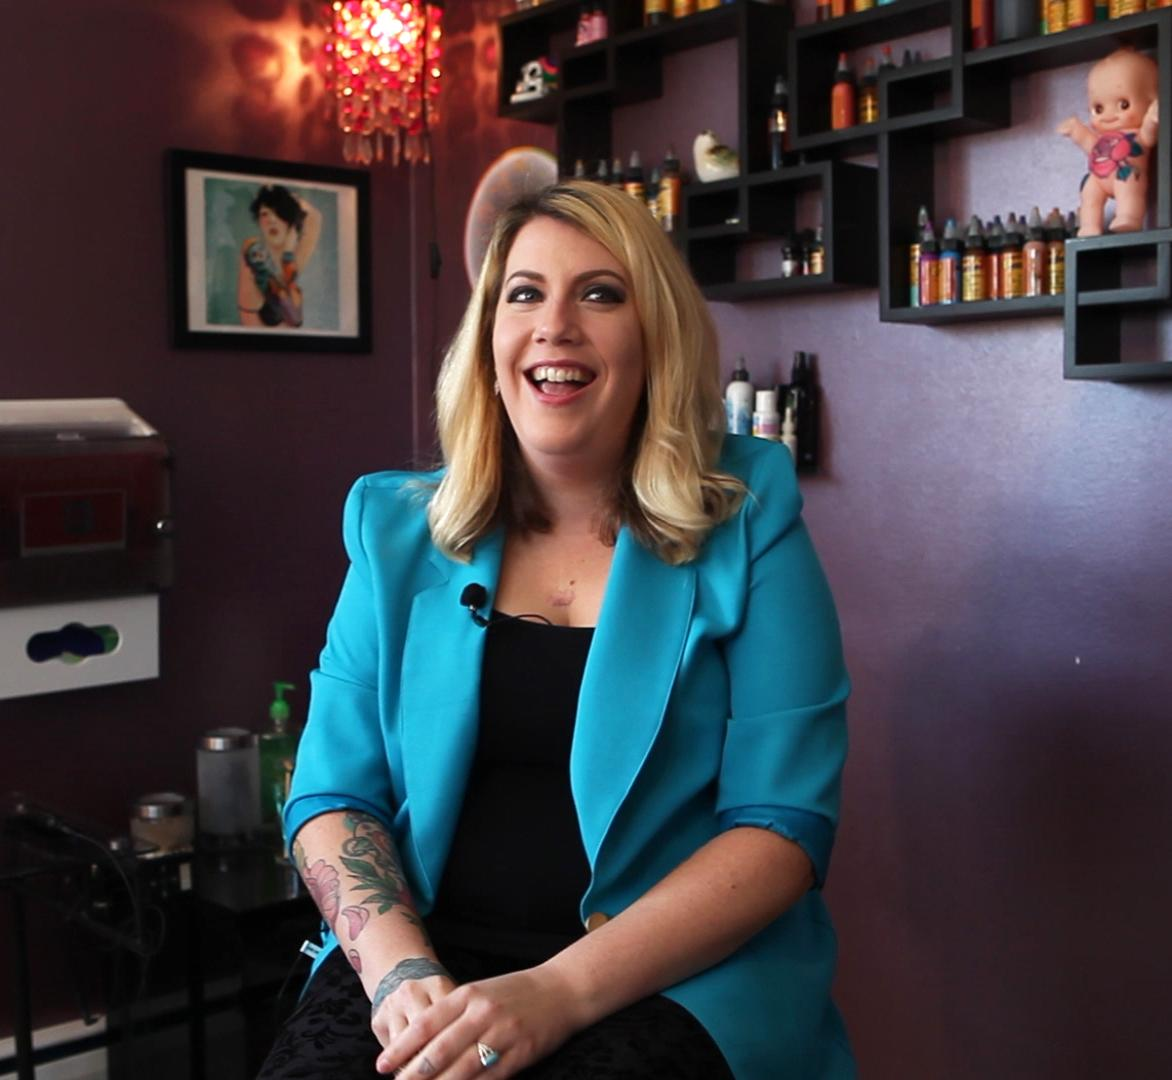 Doll says that tattooing isn't as taboo as it once was. Some post-mastectomy clients bring their whole family to support them.